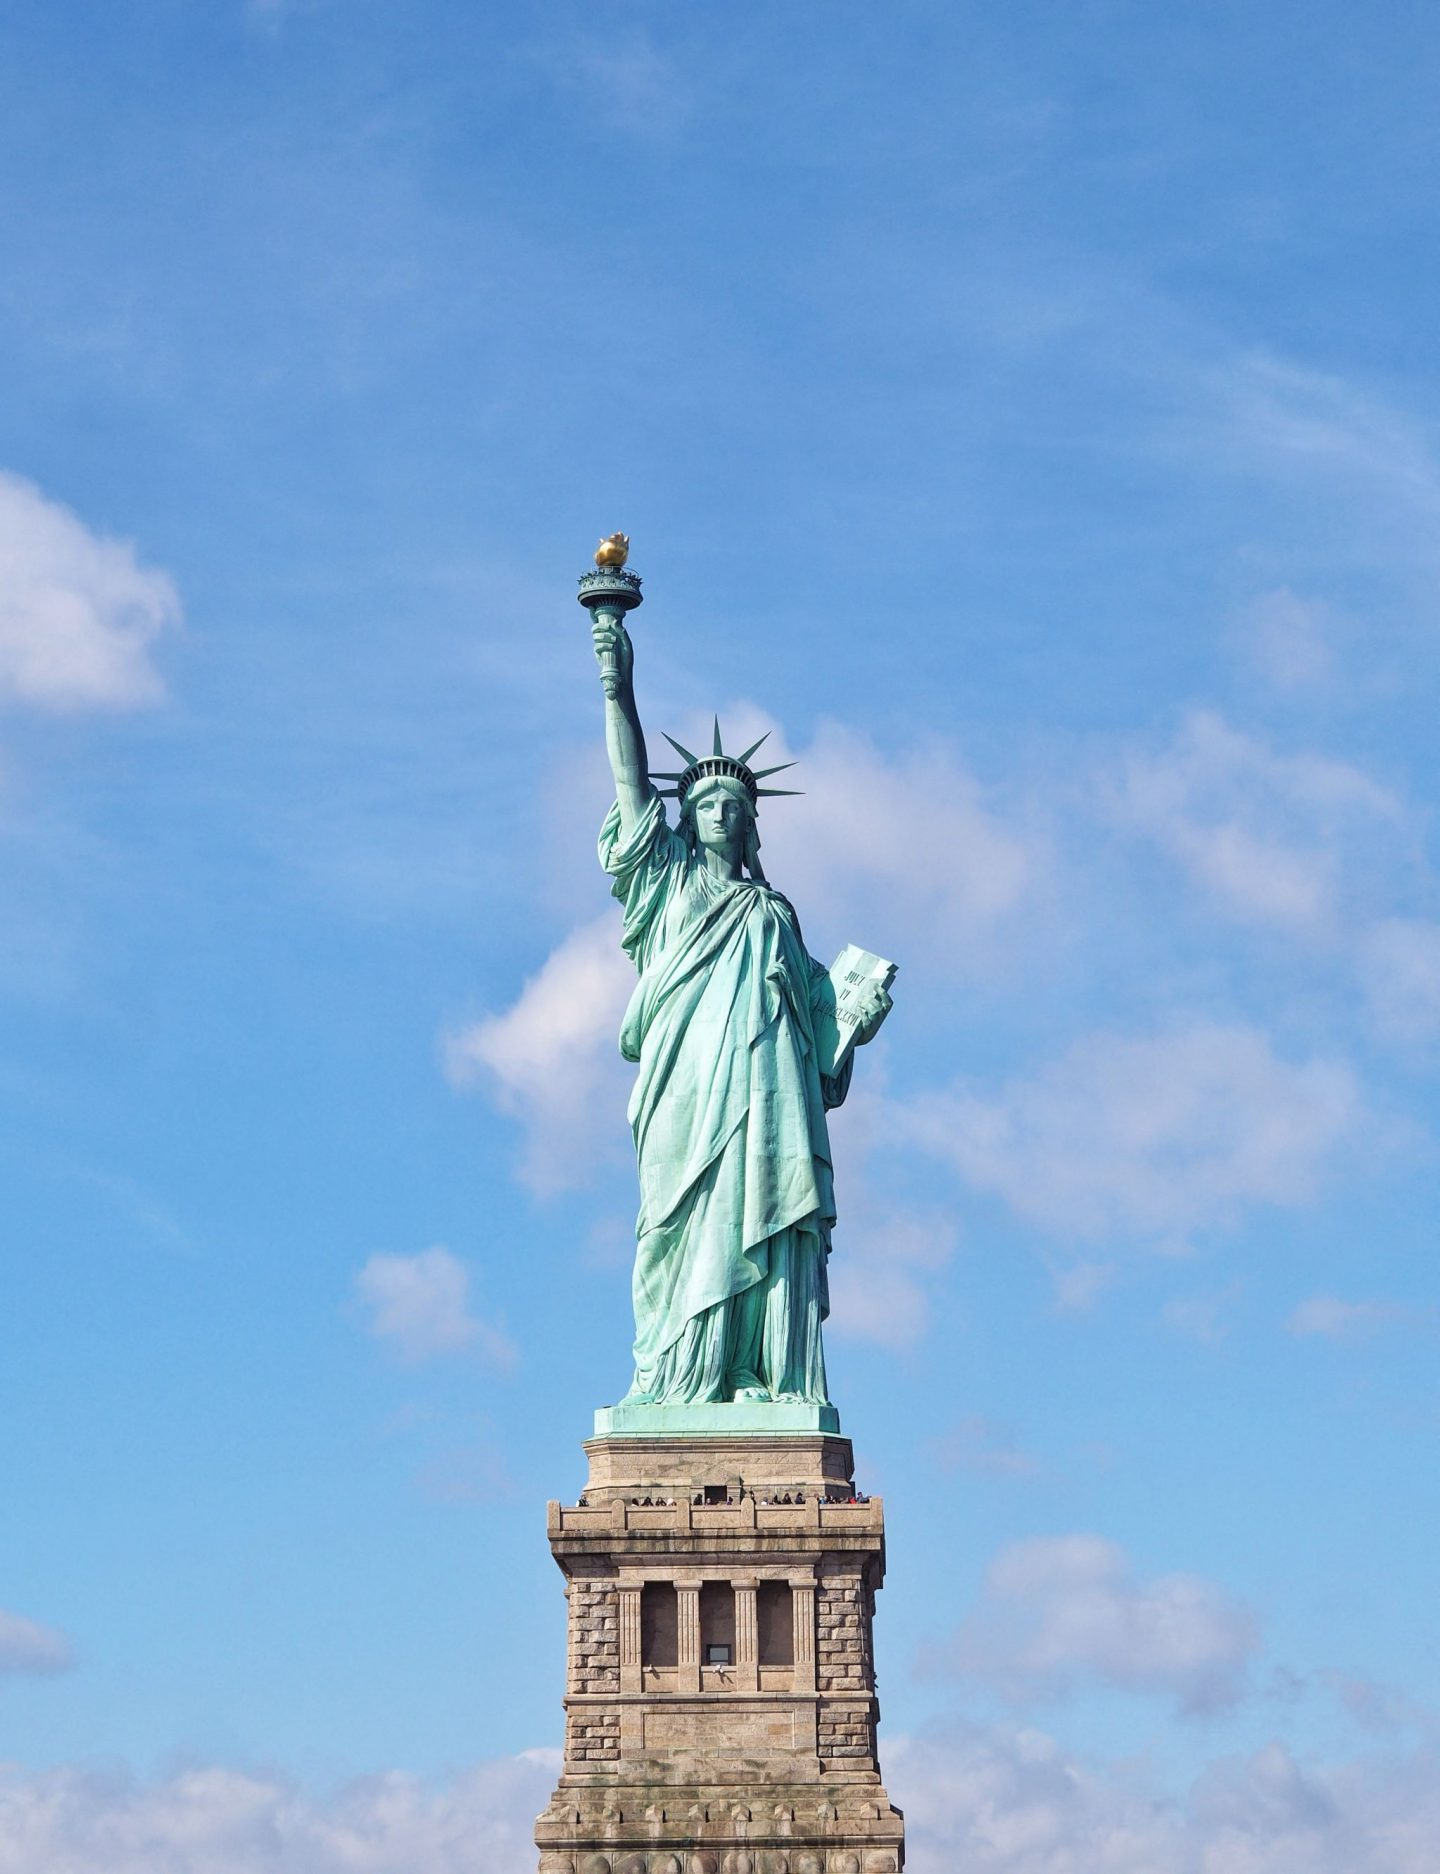 Statue of Liberty, NYC Landmark